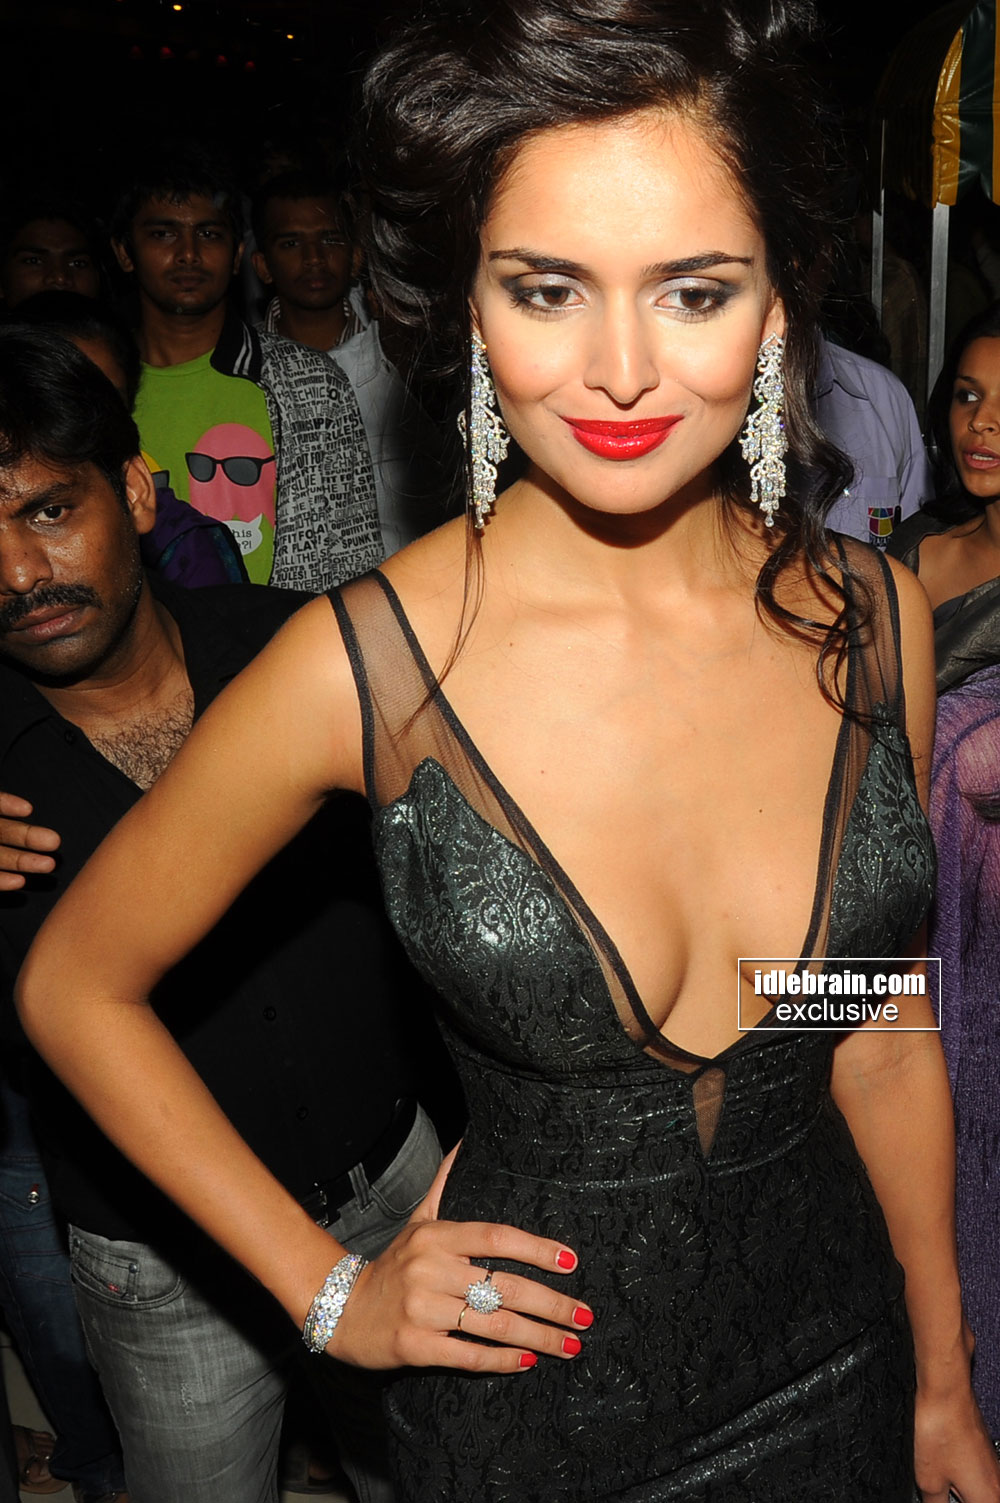 Nathalia Kaur pose 2 -  Nathalia Kaur Department Priemiere HOT black dress pics